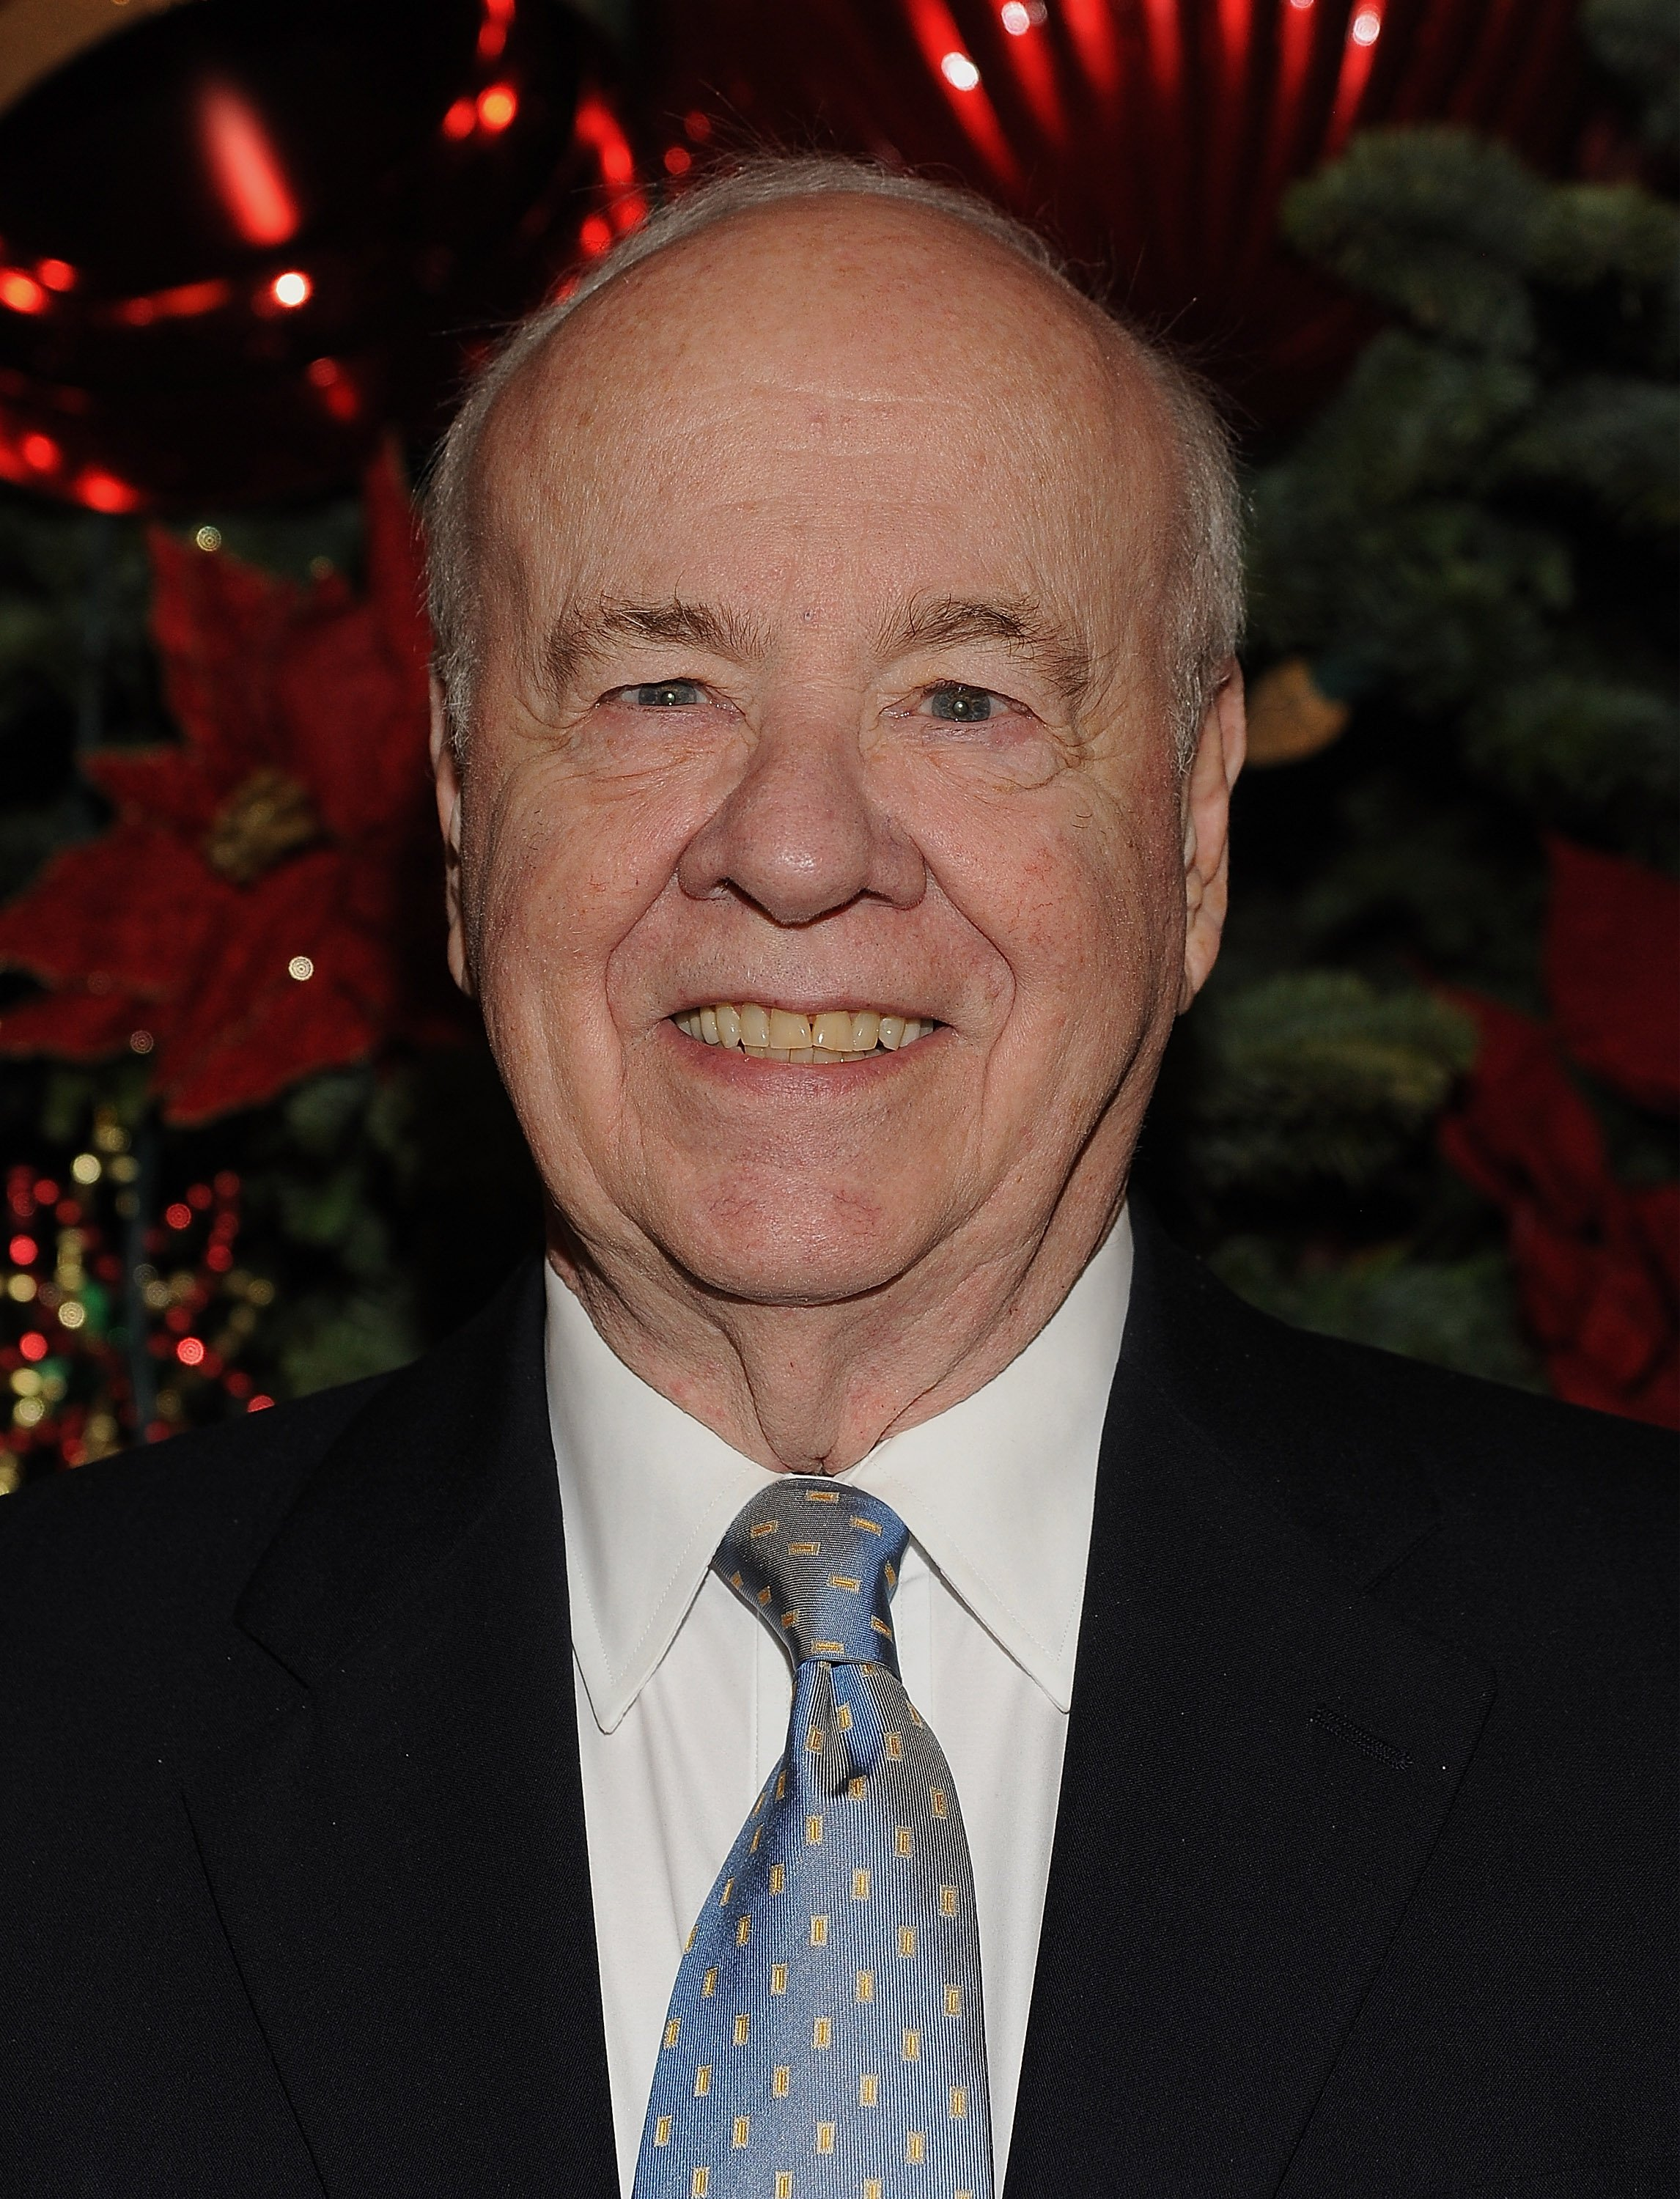 Tim Conway en Beverly Hills, California. | Fuente: Getty Images